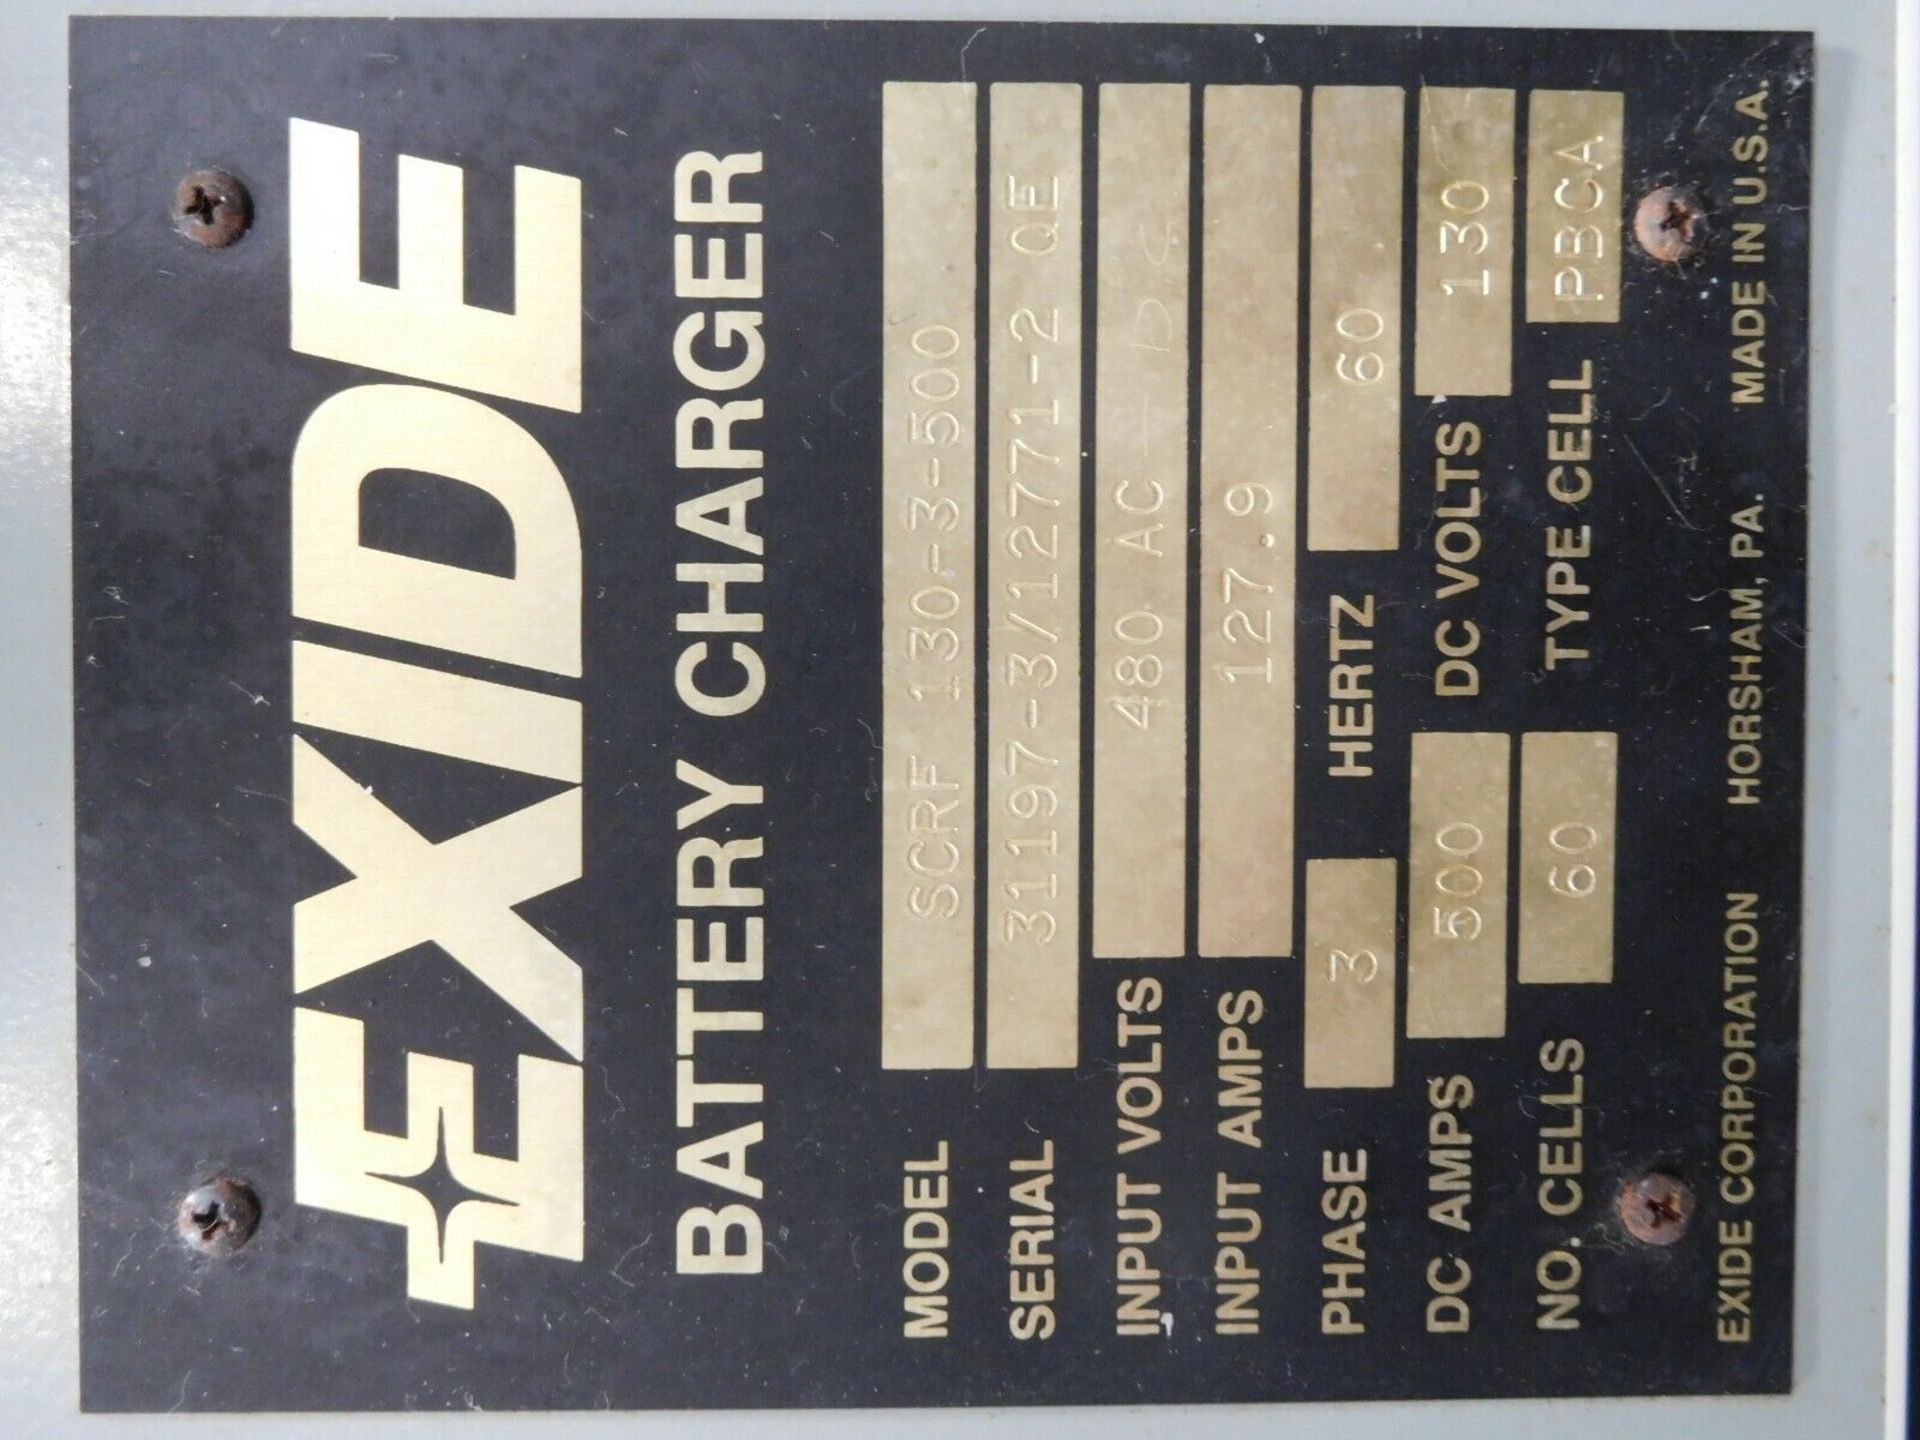 Exide SCRF 130-3-400 Battery Charger. 480 VAC. 500 A DC. 60 Cell. PBCA. - Image 2 of 2